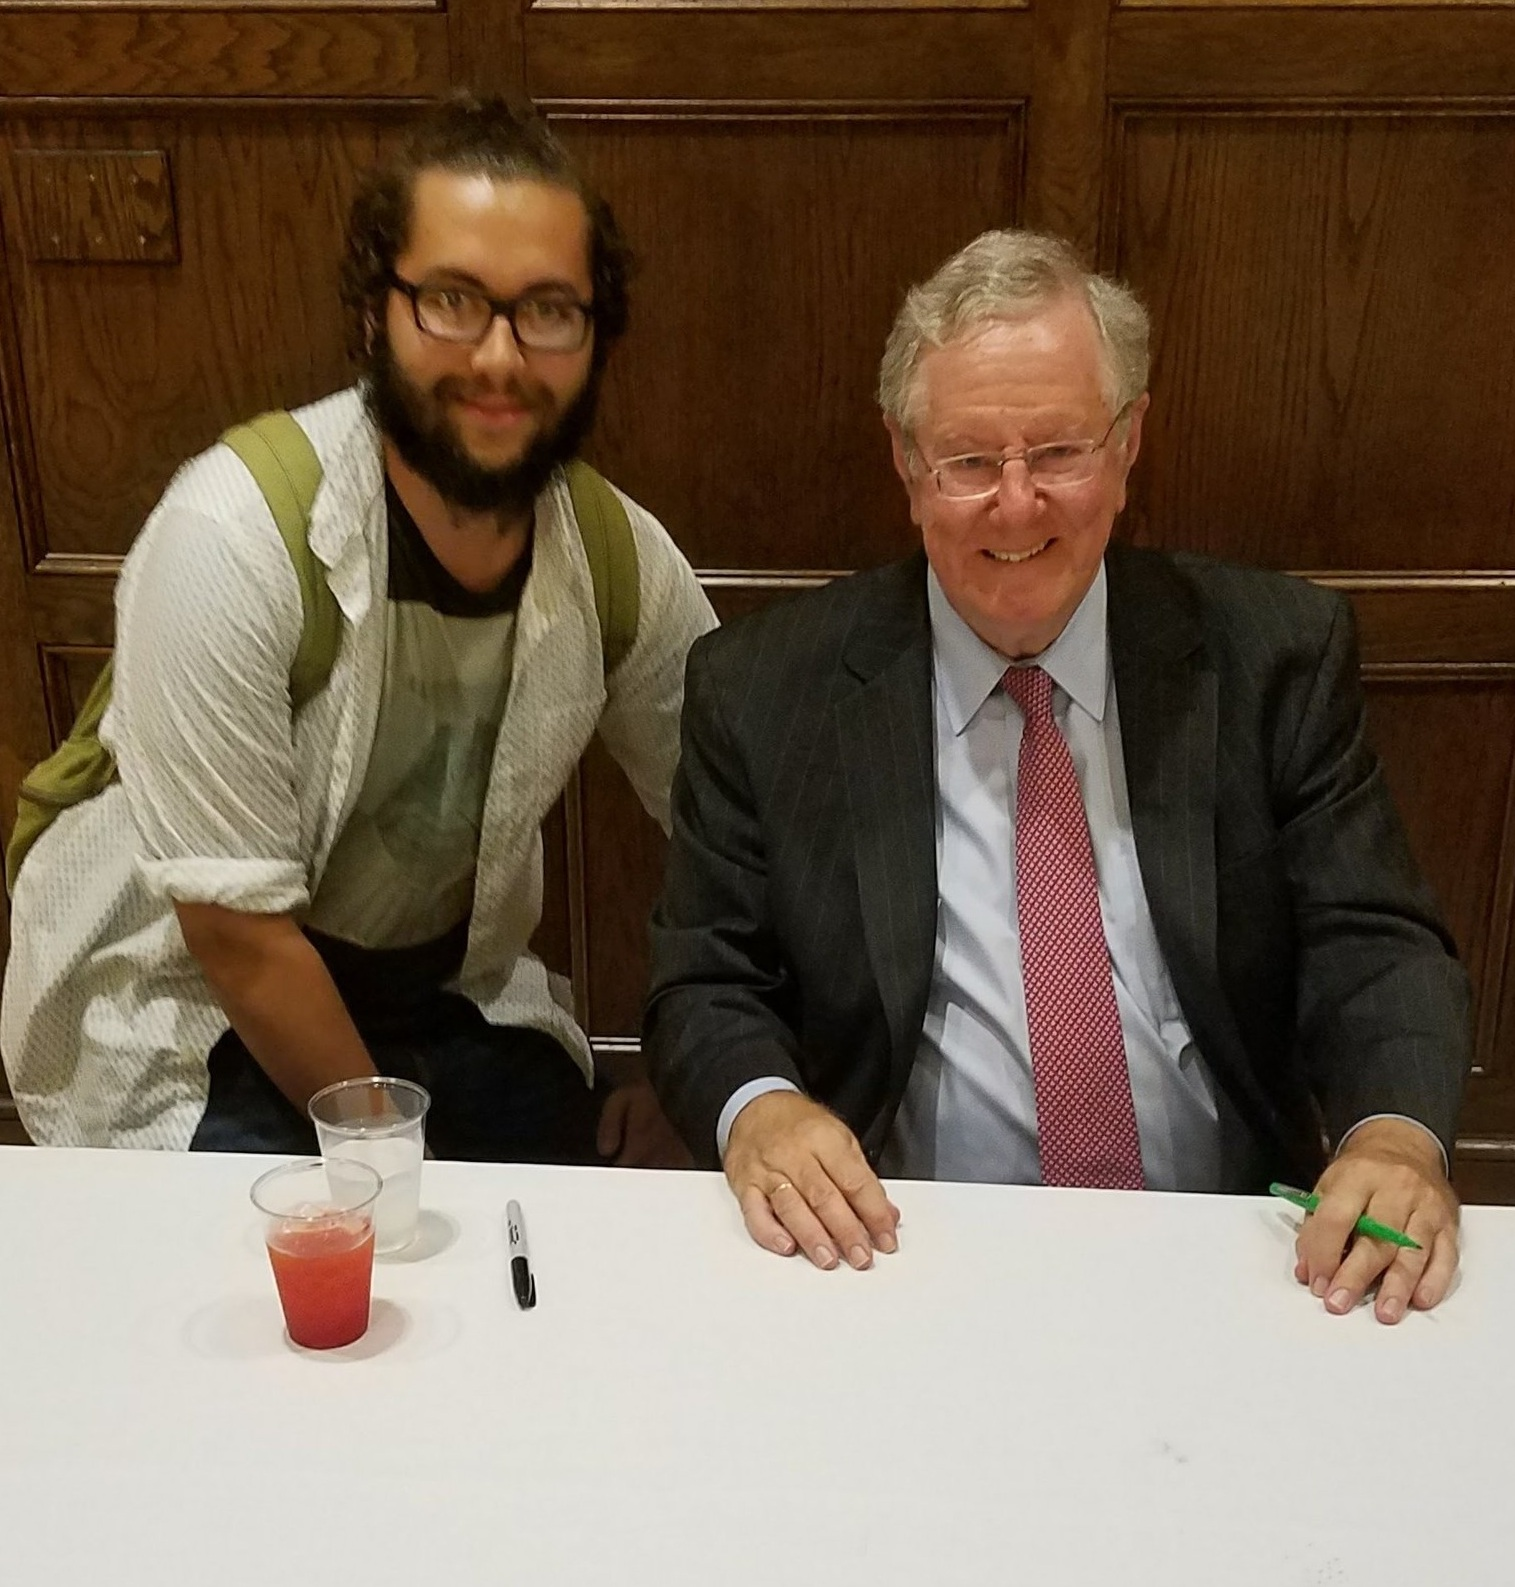 Steve Forbes at his most uncomfortable.